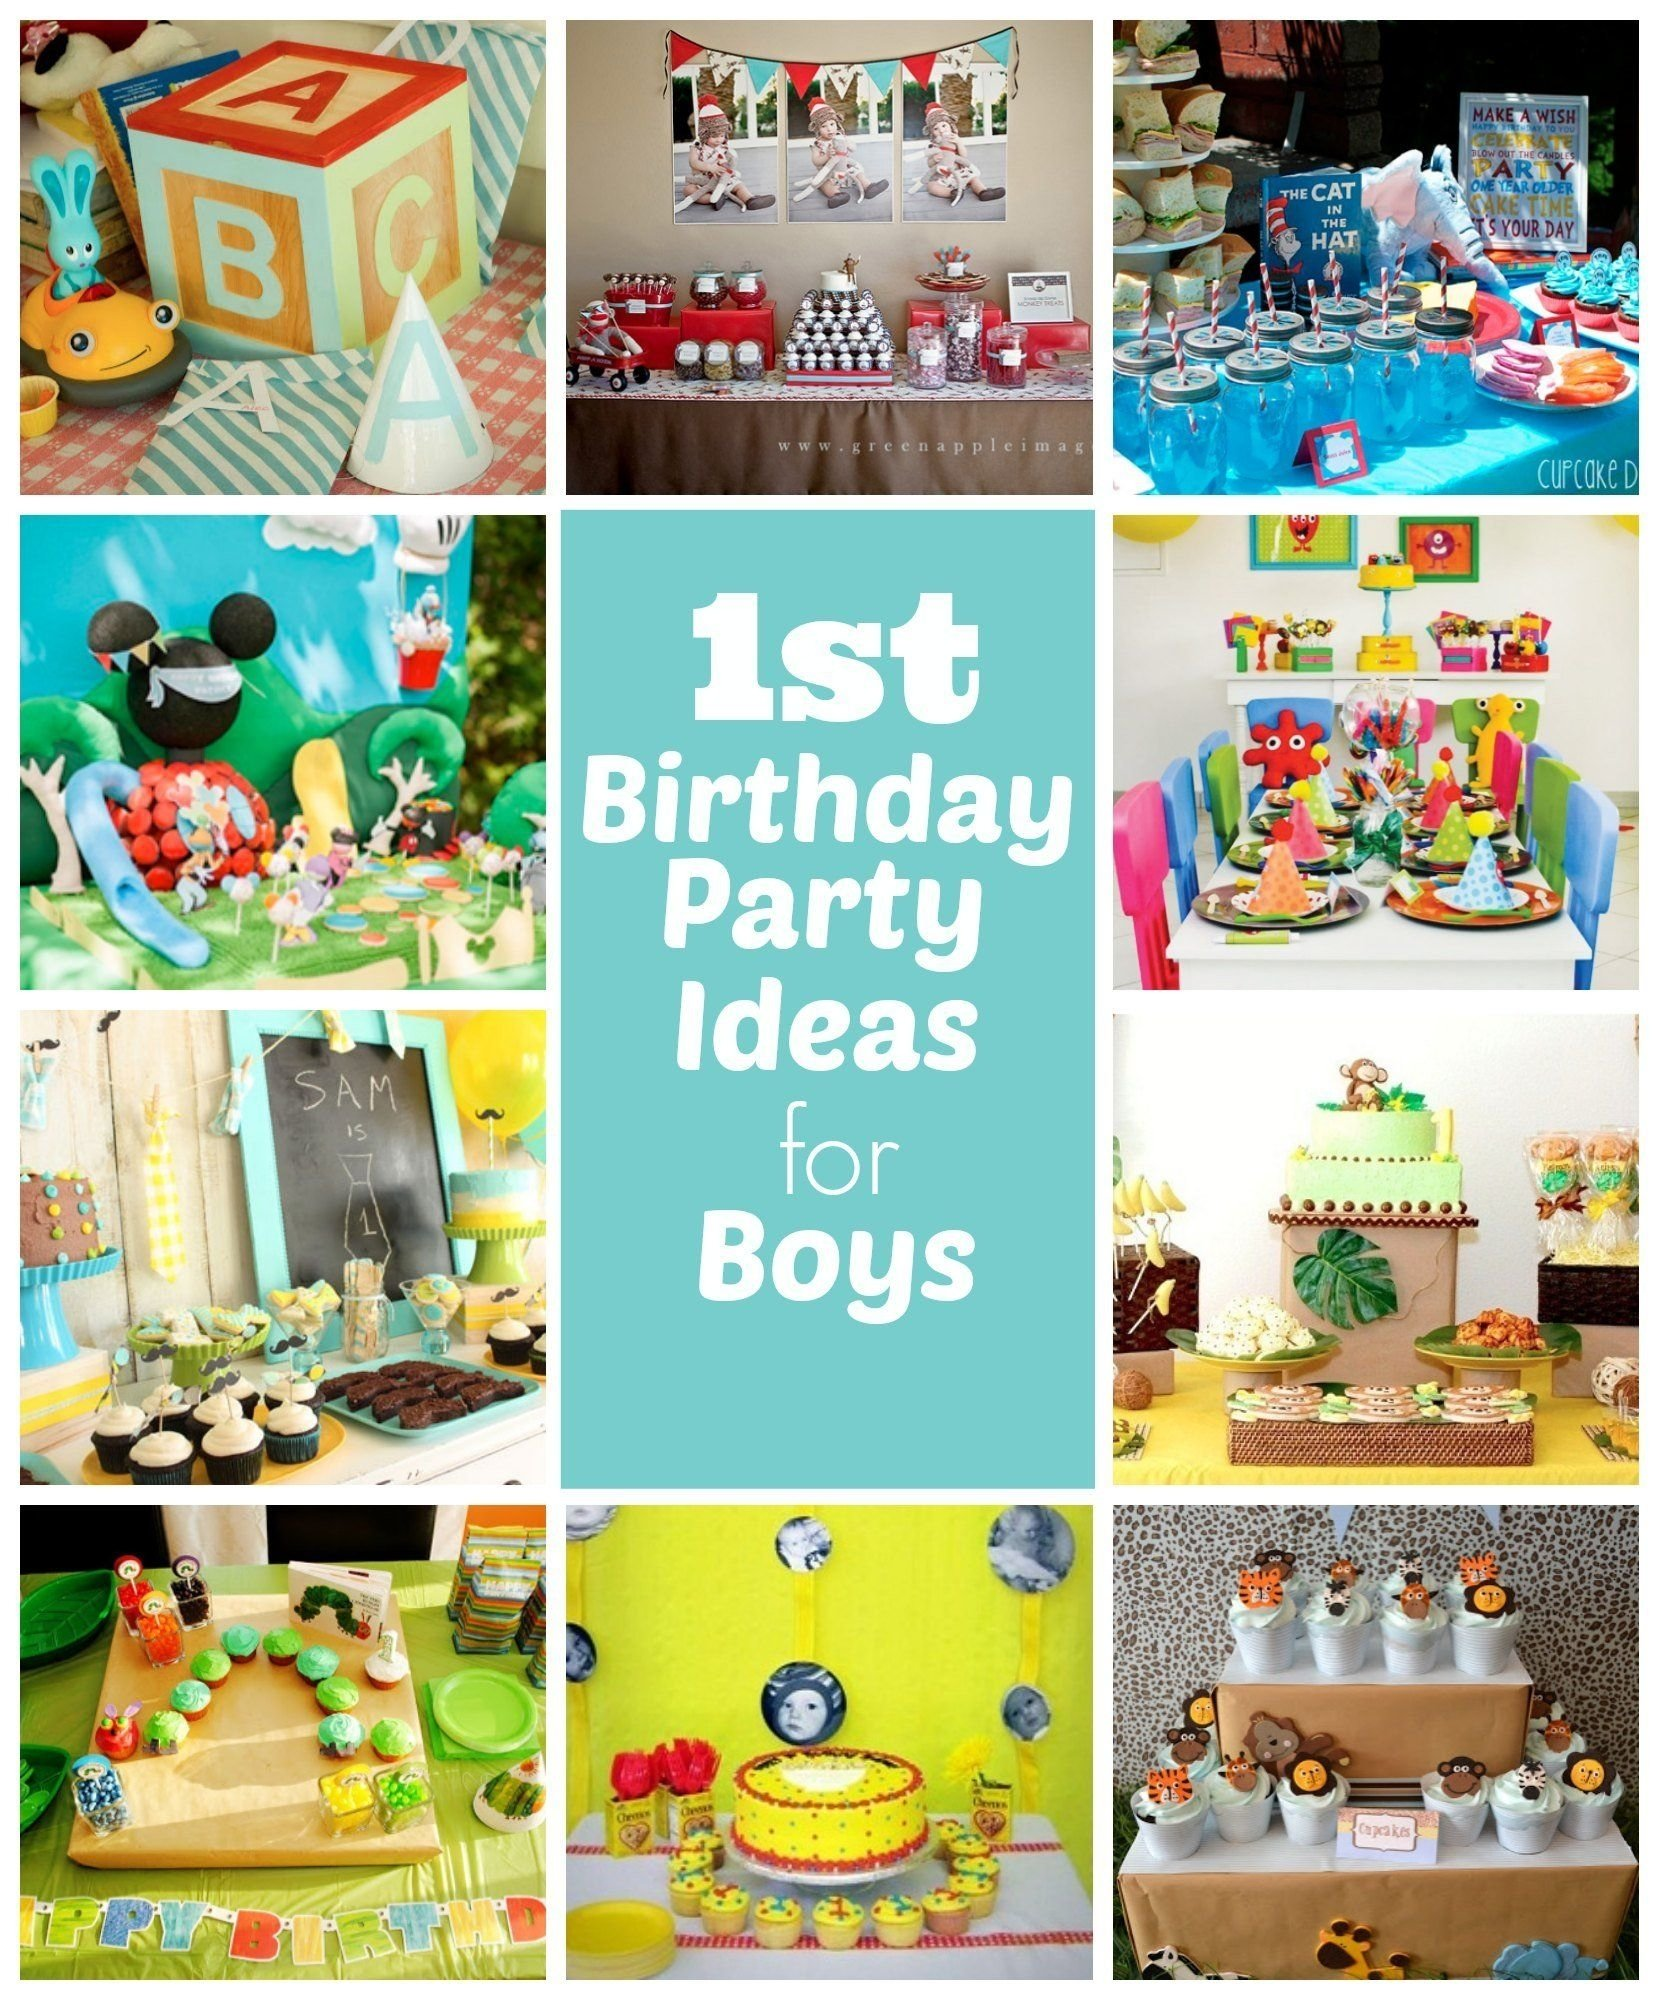 10 Elegant Unique First Birthday Party Ideas 1st birthday party ideas for boys right start blog birthday